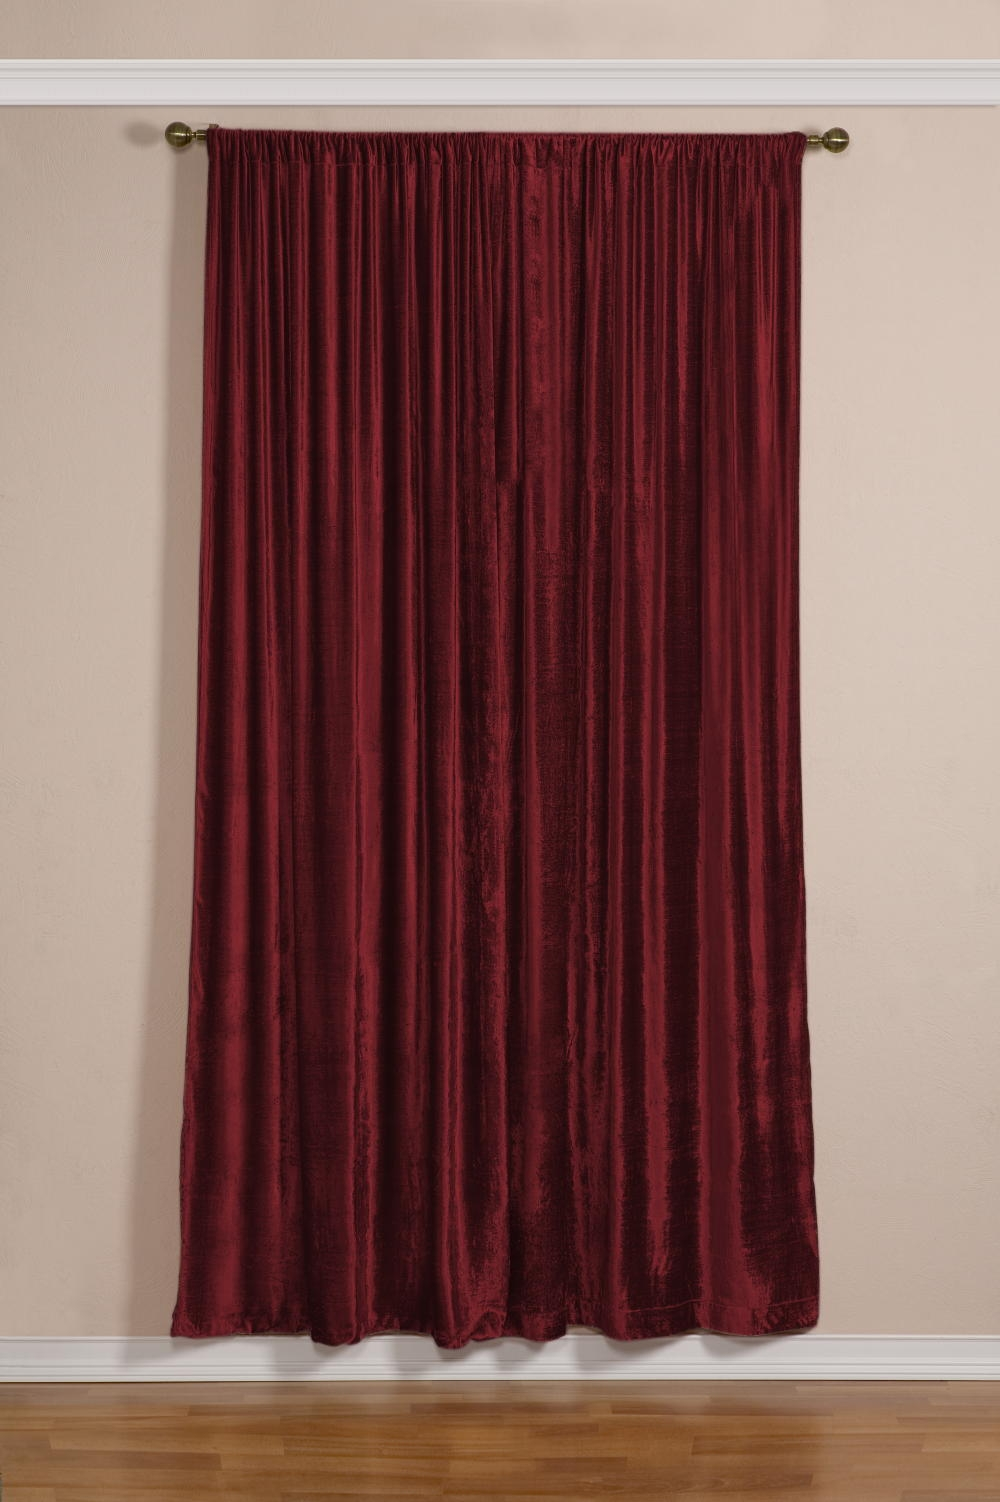 Taupe Velvet Curtains Mobiion With Regard To Velveteen Curtains (Image 14 of 15)